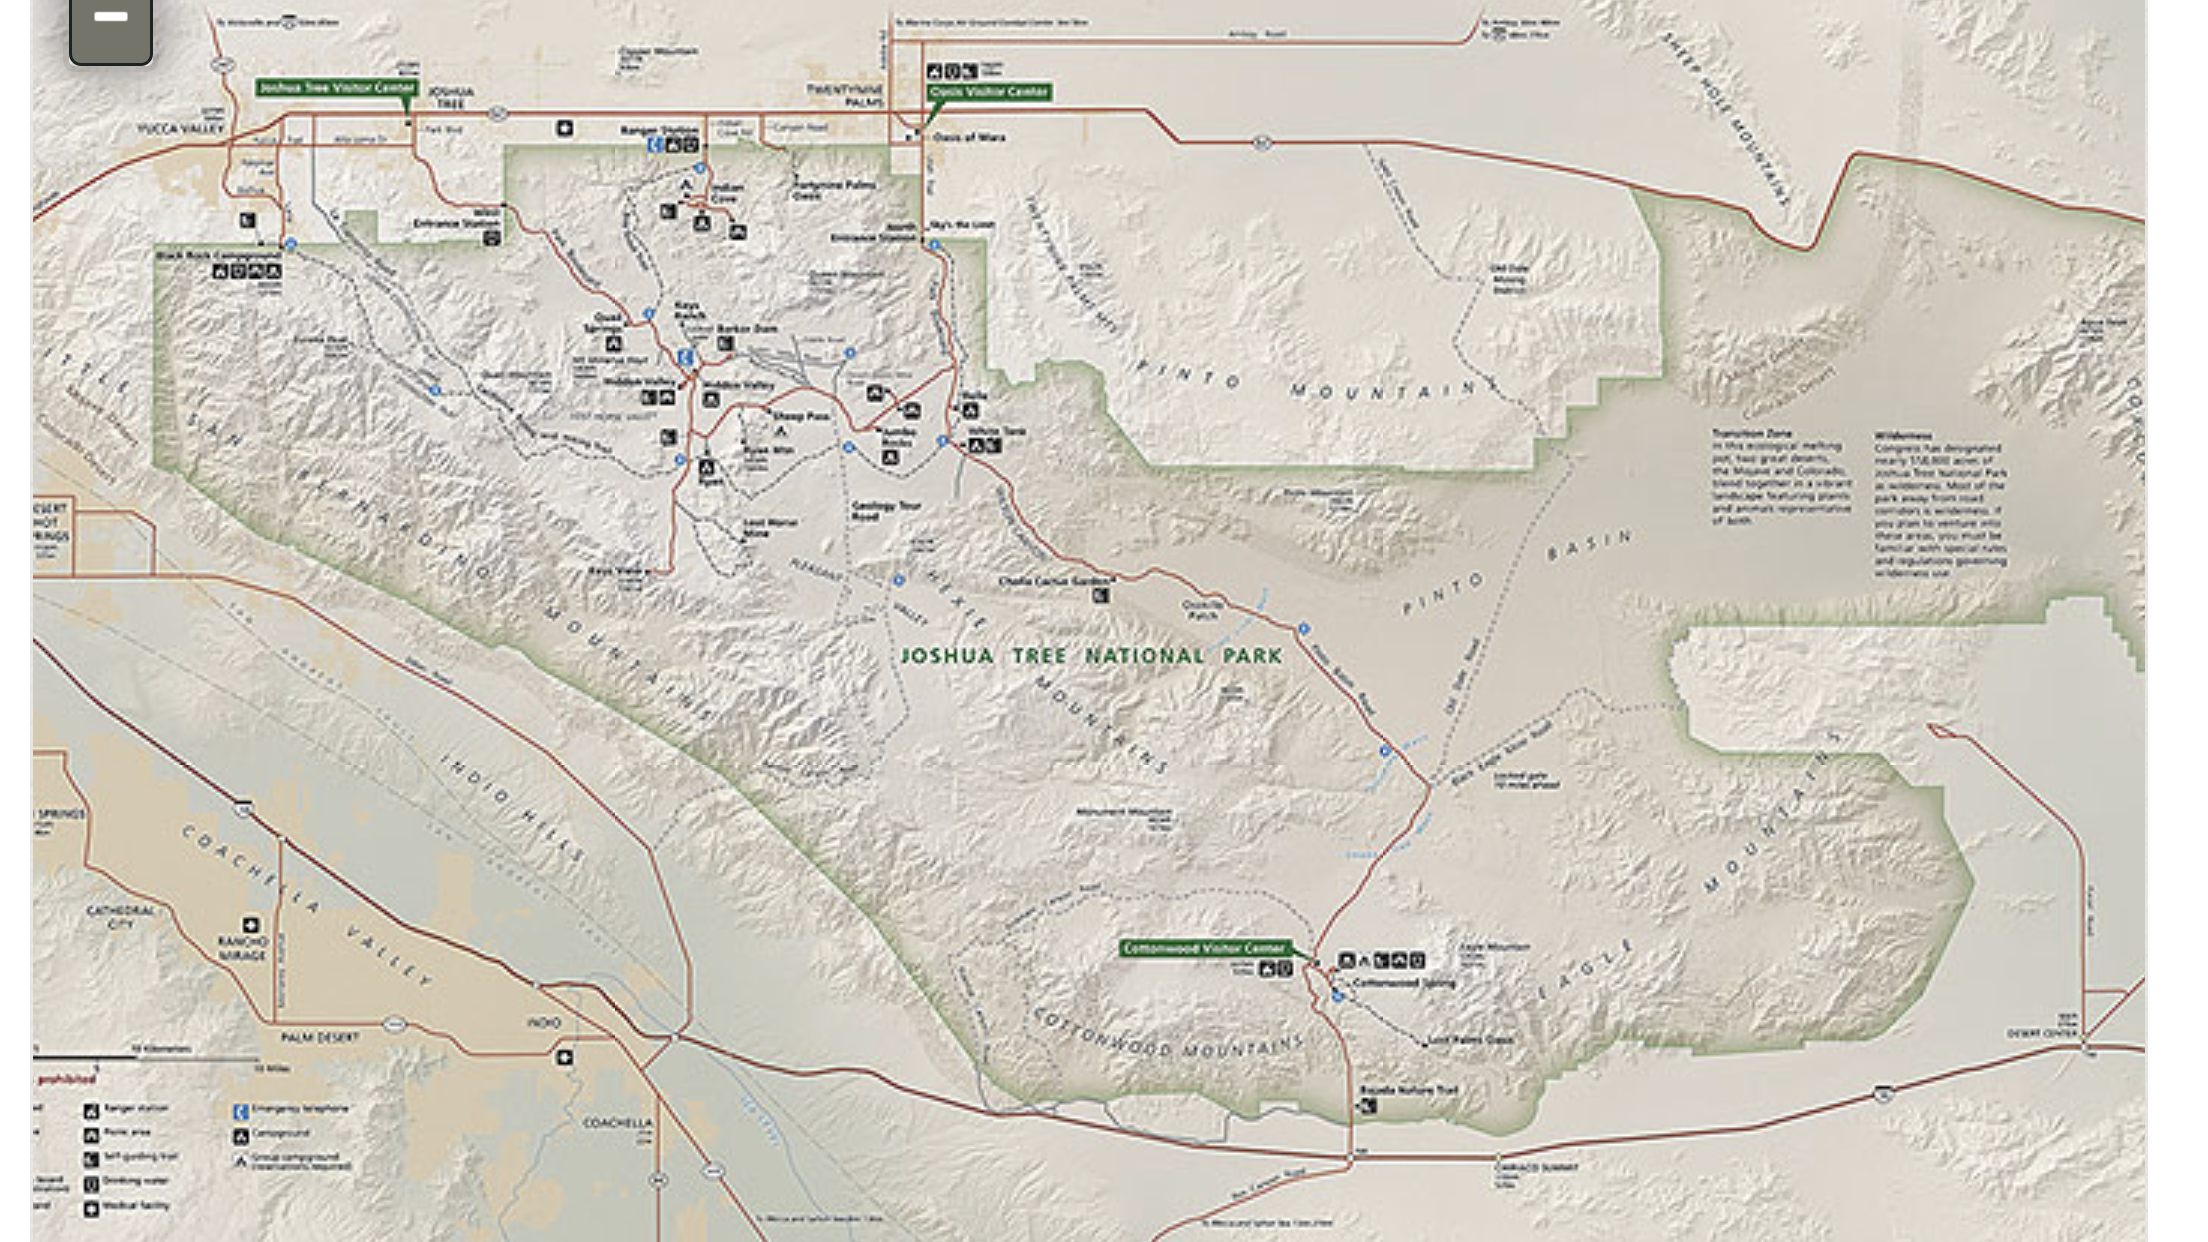 A map of Joshua Tree National Park (credit Park Services)